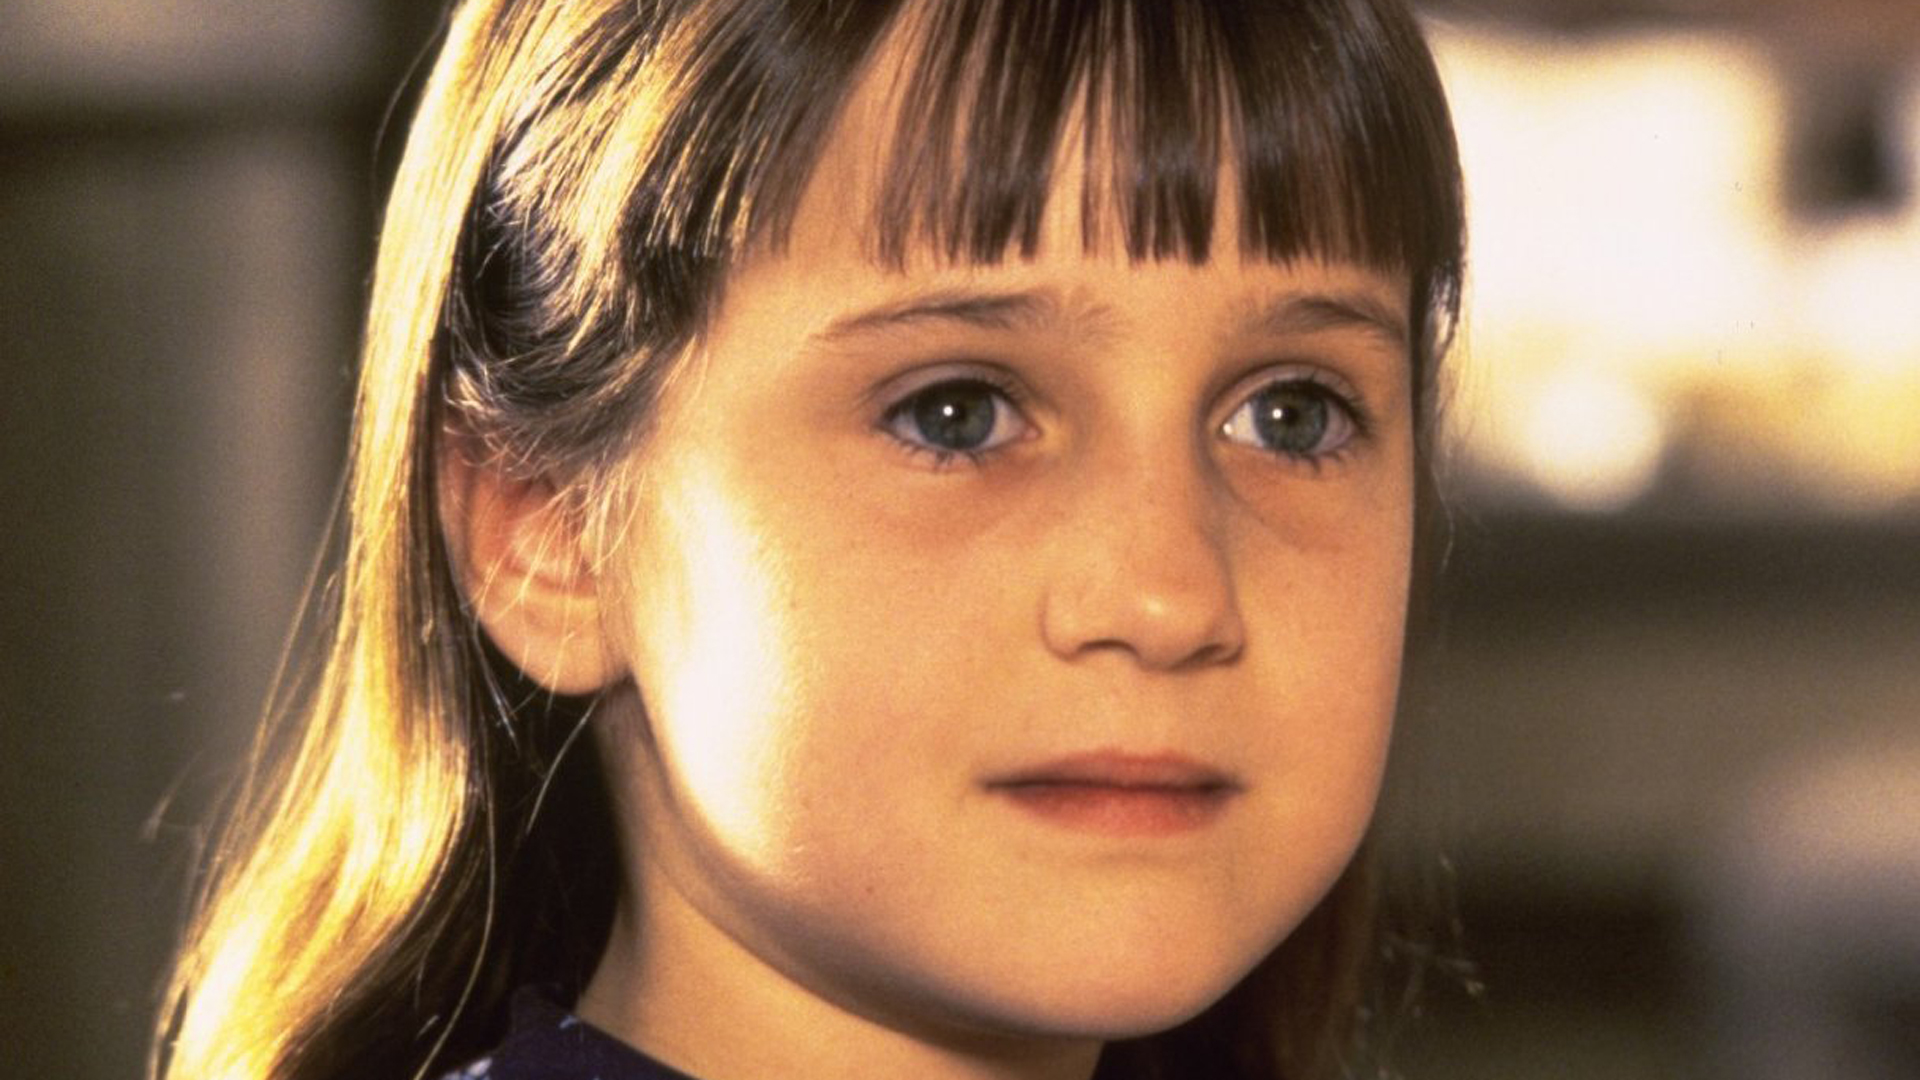 What these child stars look like today